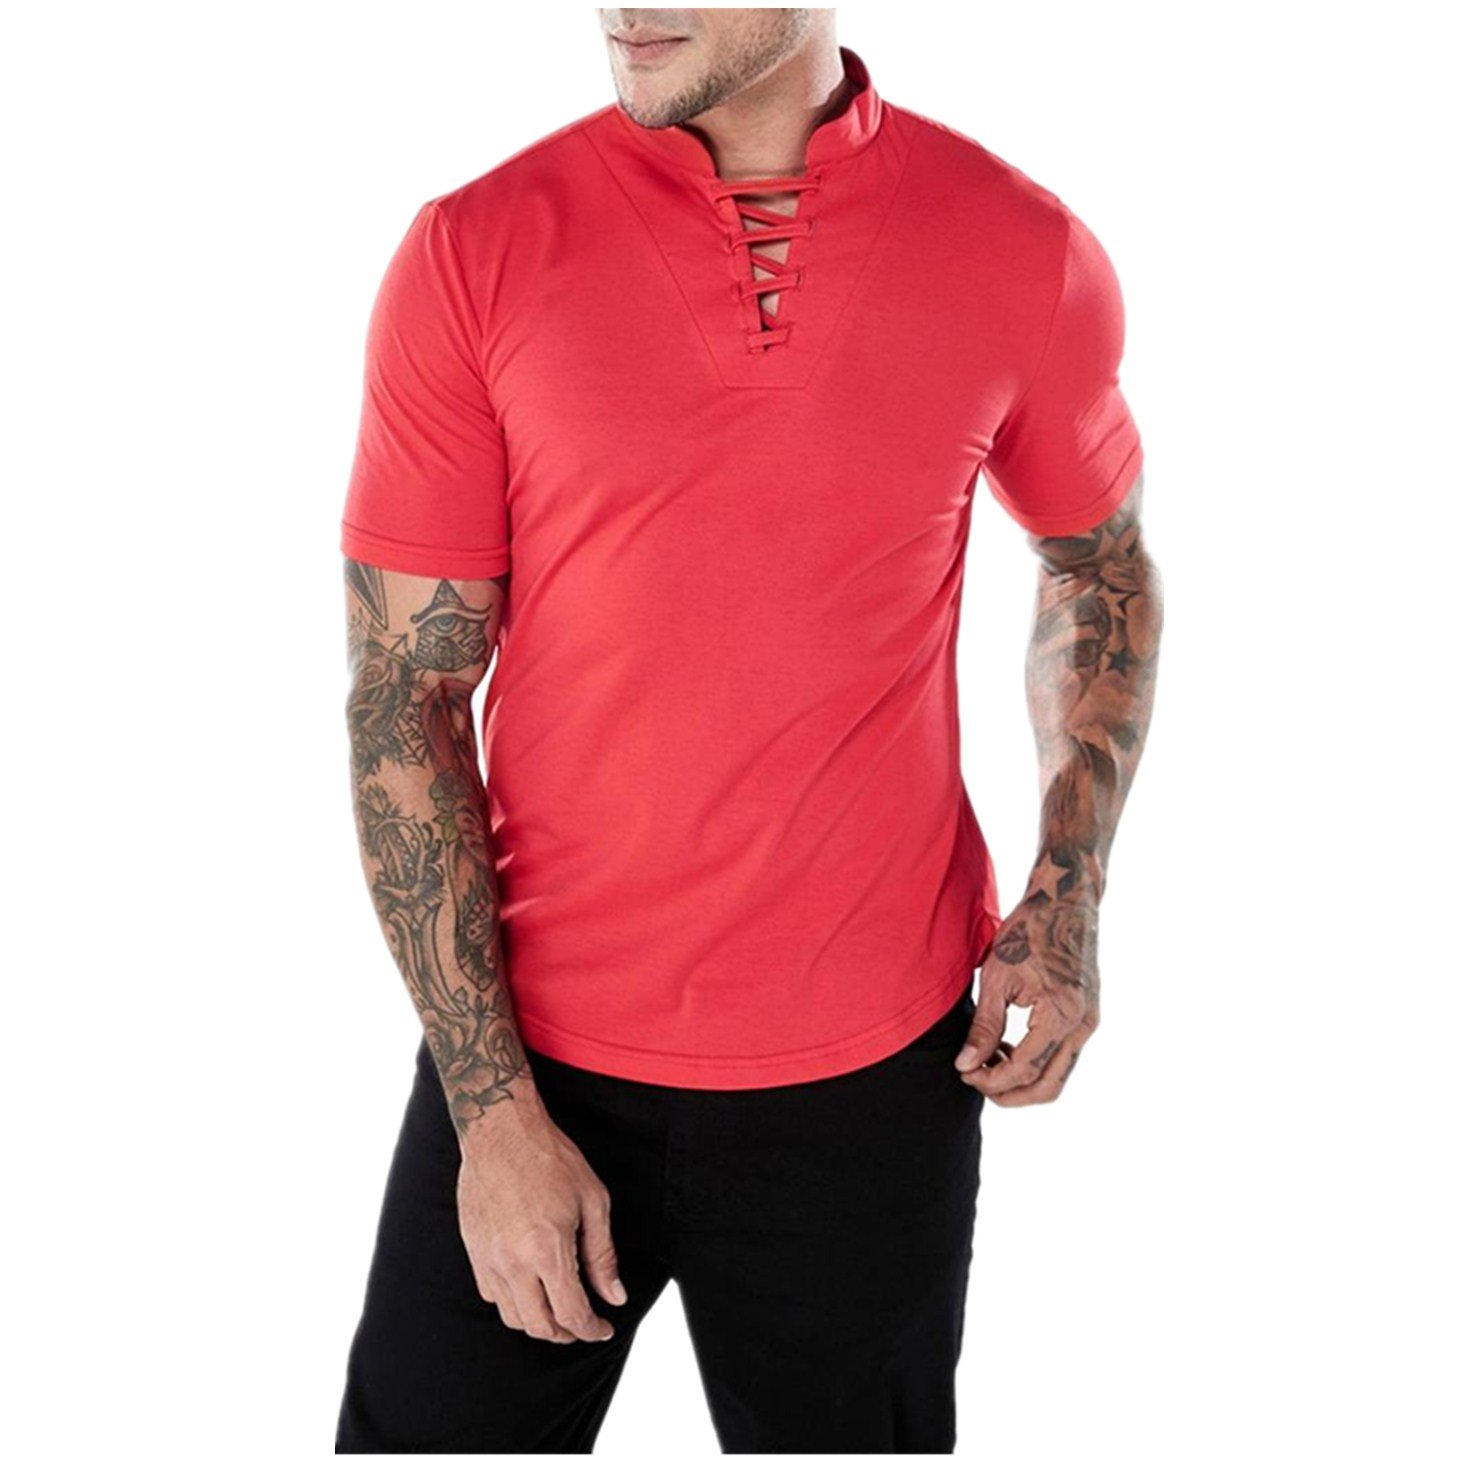 190ff5cd3ea332 Amazon.com  BSGSH Mens Short Sleeve Shirts Lace up V Neck Solid Slim T-Shirt  Tee Muscle Tops for Men  Clothing